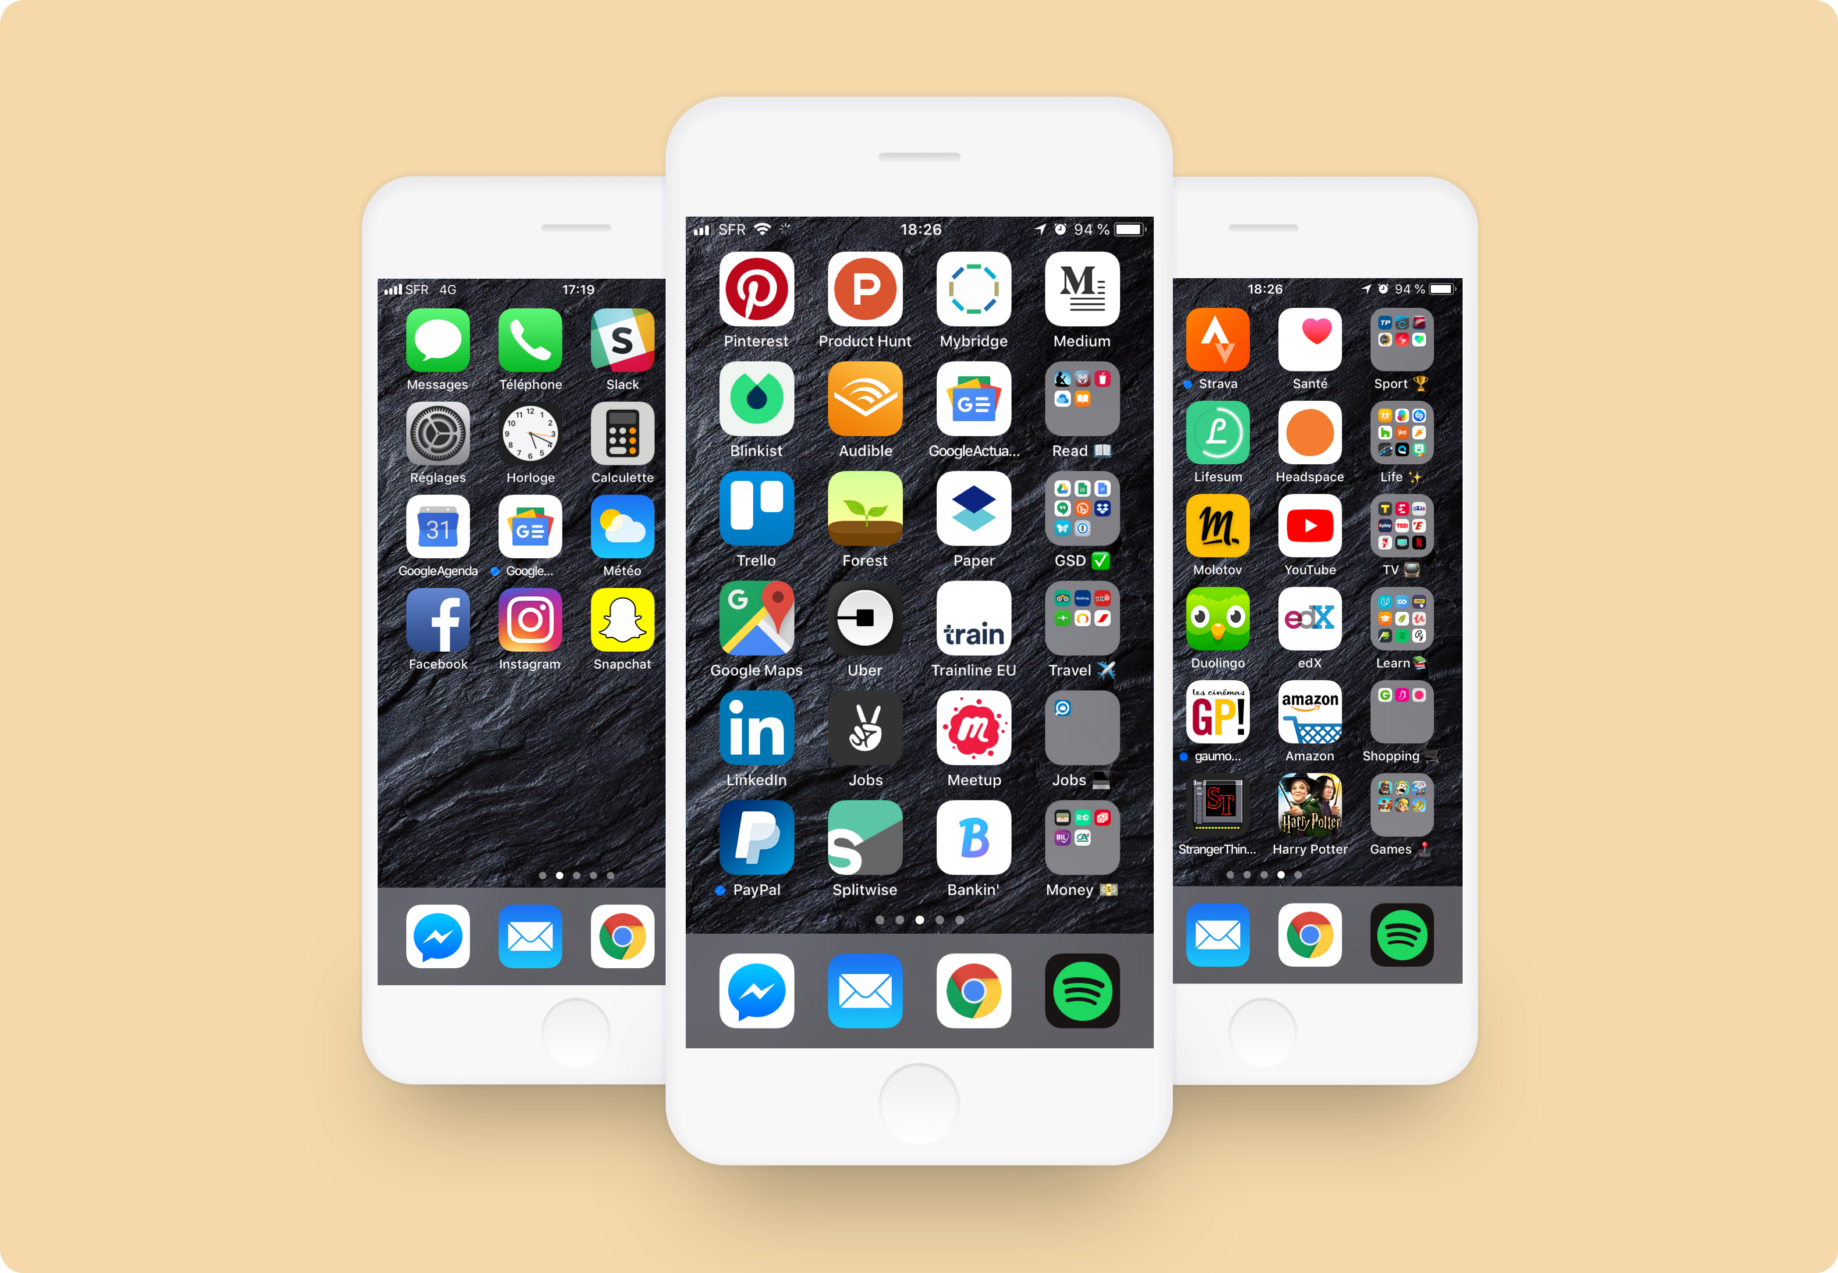 The best way to organize your iPhone Apps - The Startup - Medium